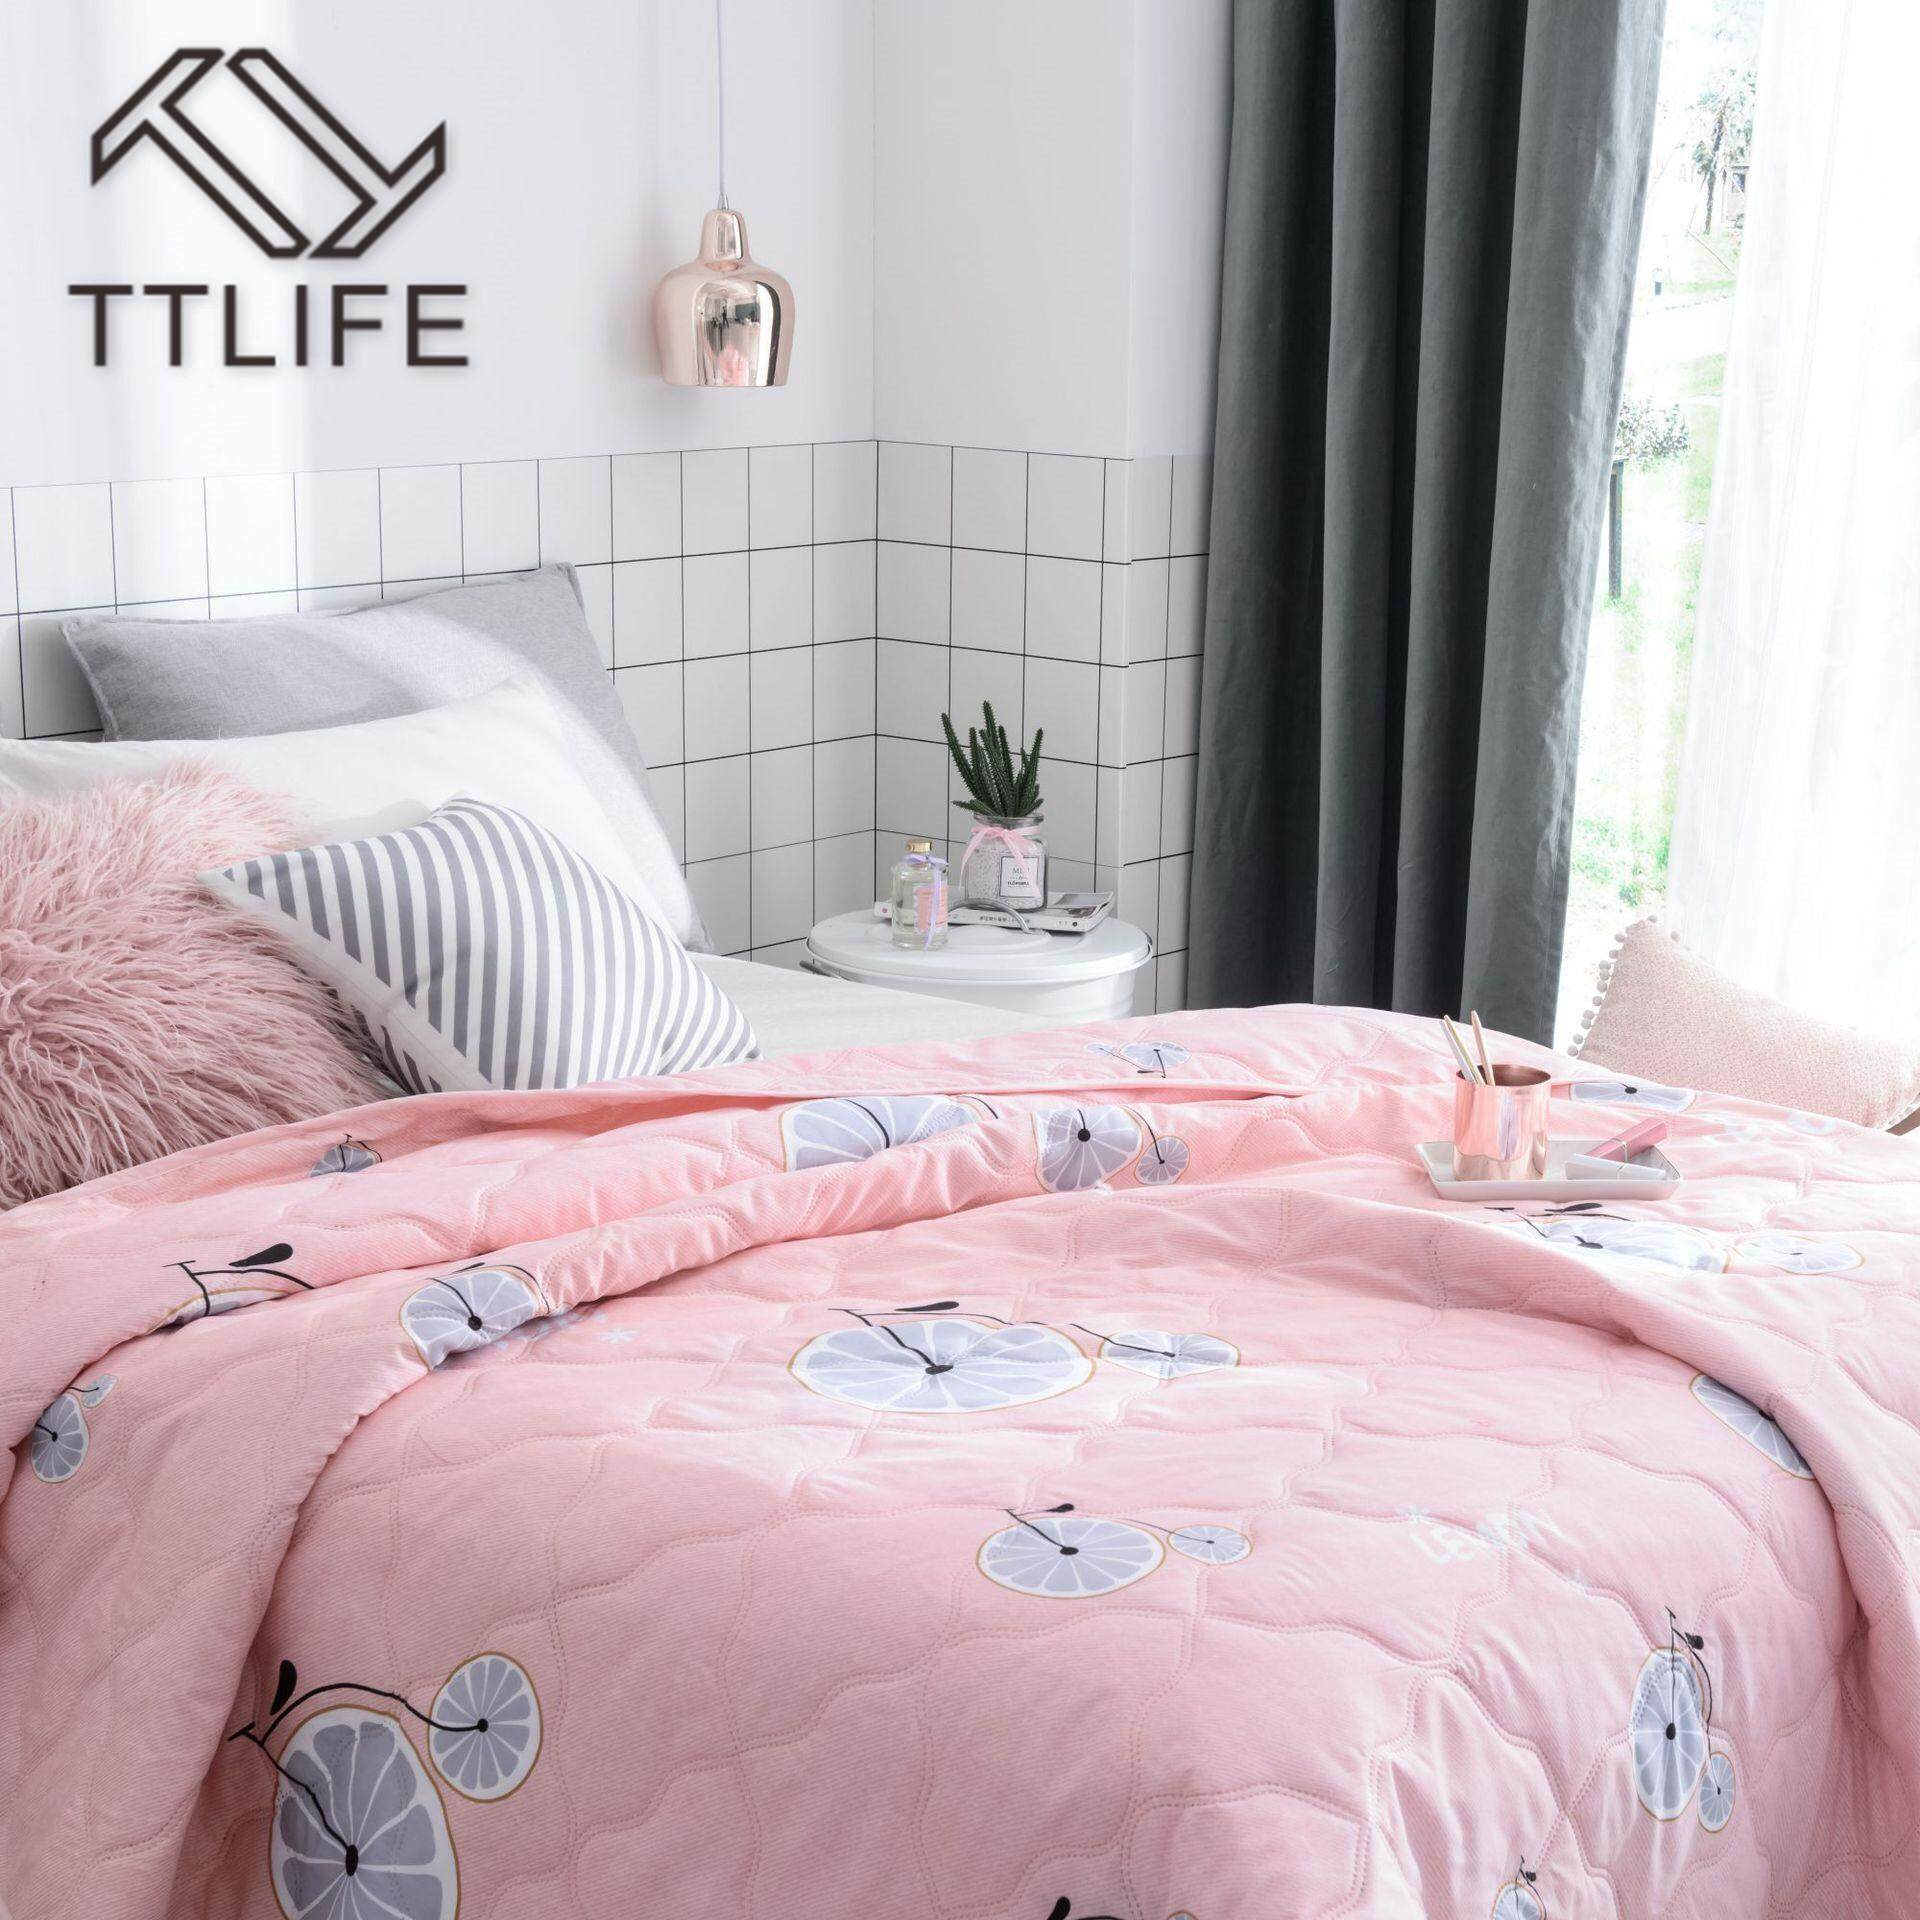 Comforters For Sale Quilts And Duvets Prices Brands Review In Bedcover Set Silk Star Oringina 200x200 Ttlife 2018 New Bedding Flamingo Summer Quilt Blankets Cartoon Comforter Bed Cover Quilting Home Textiles Suitable